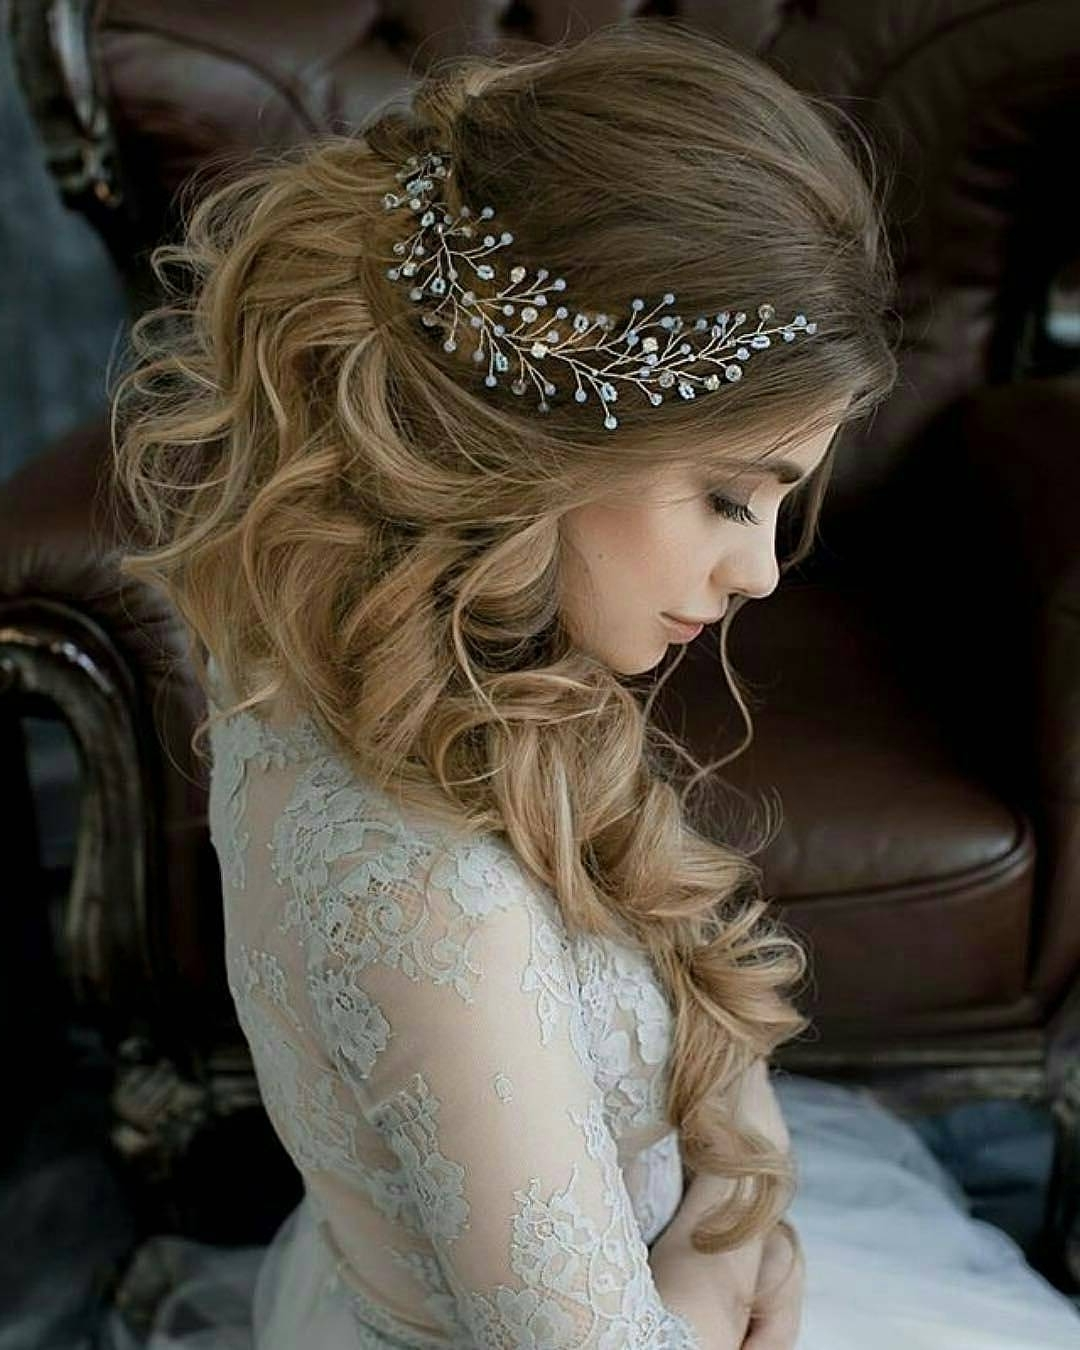 10 Lavish Wedding Hairstyles For Long Hair – Wedding Hairstyle Ideas Intended For Most Current Wedding Hairstyles For Long Hair With Flowers (View 14 of 15)